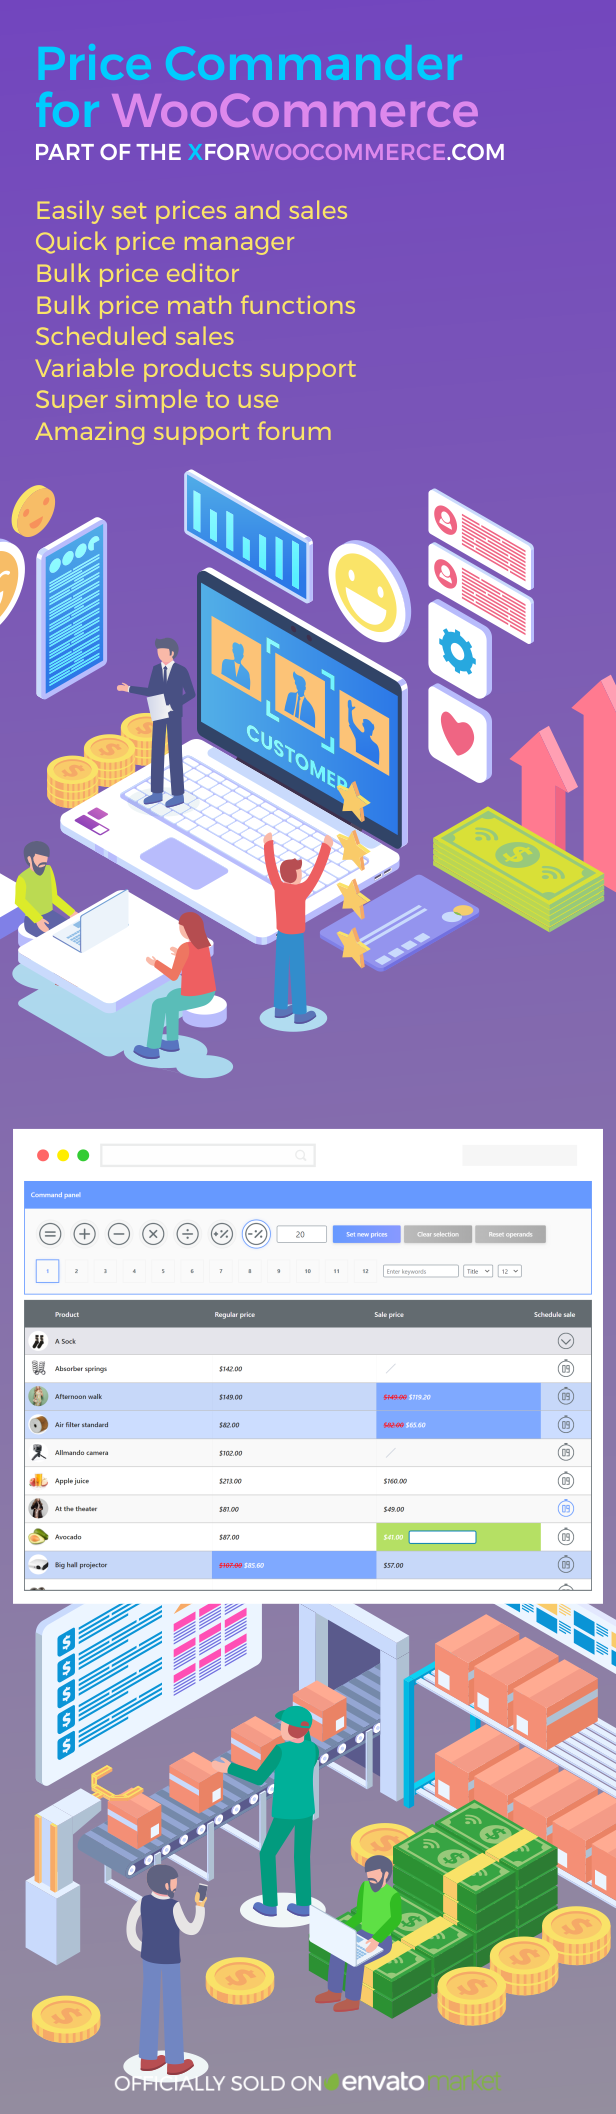 Price Commander for WooCommerce - 2